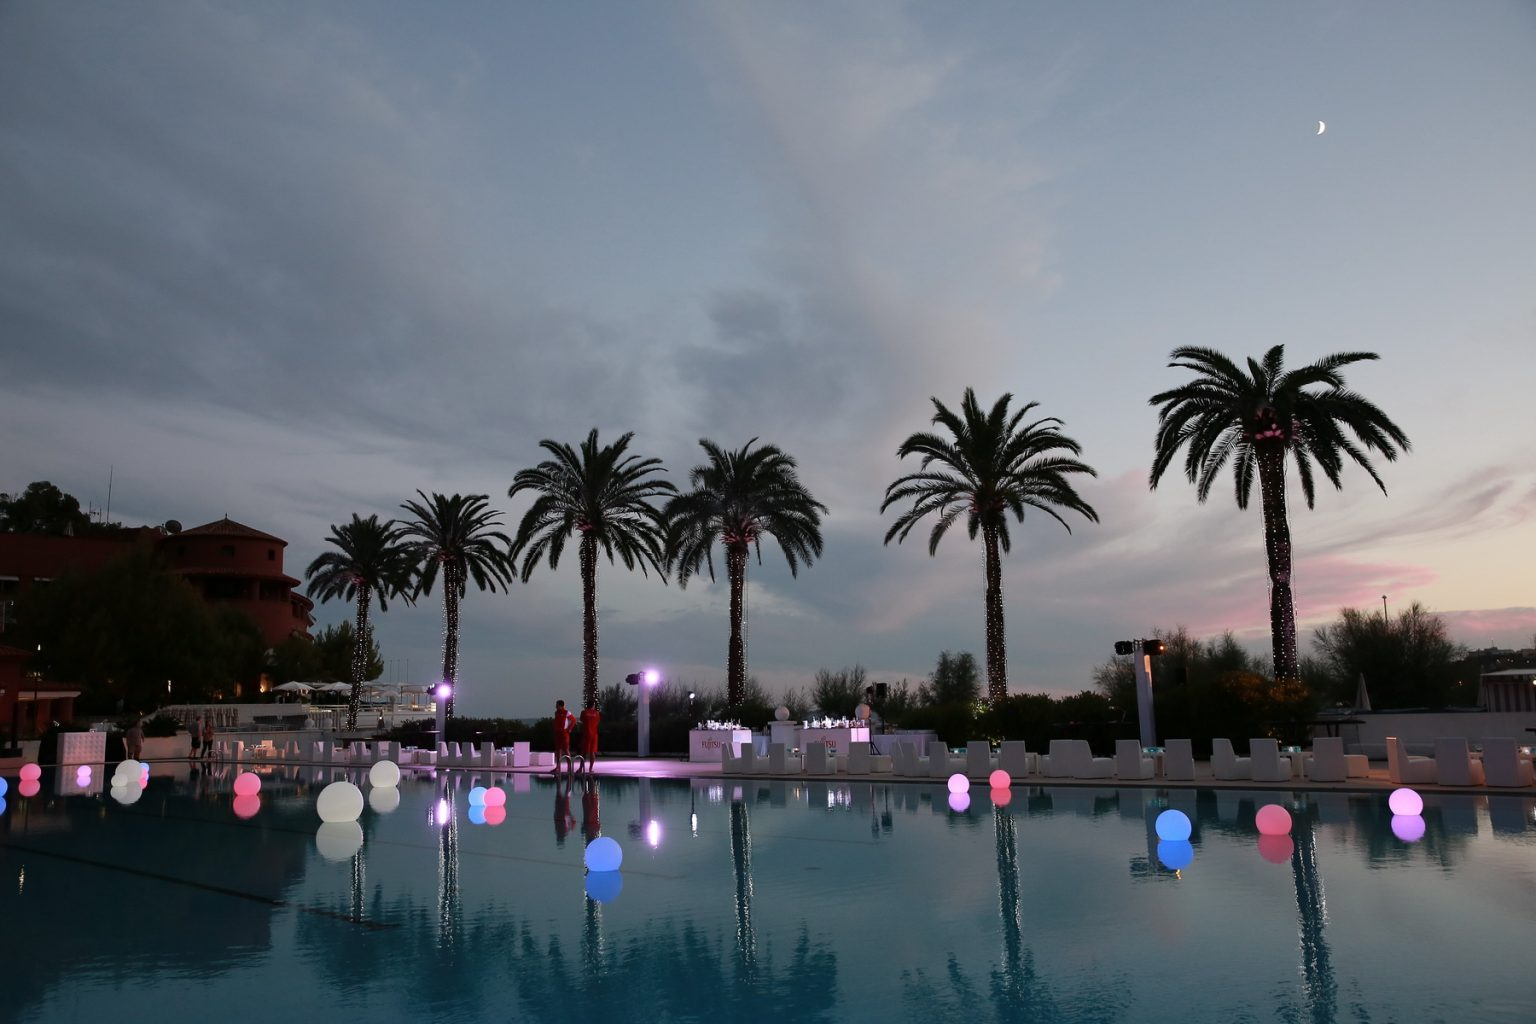 Le Deck Monte Carlo Pool Evening 11 - Le Deck Monte Carlo Pool Evening